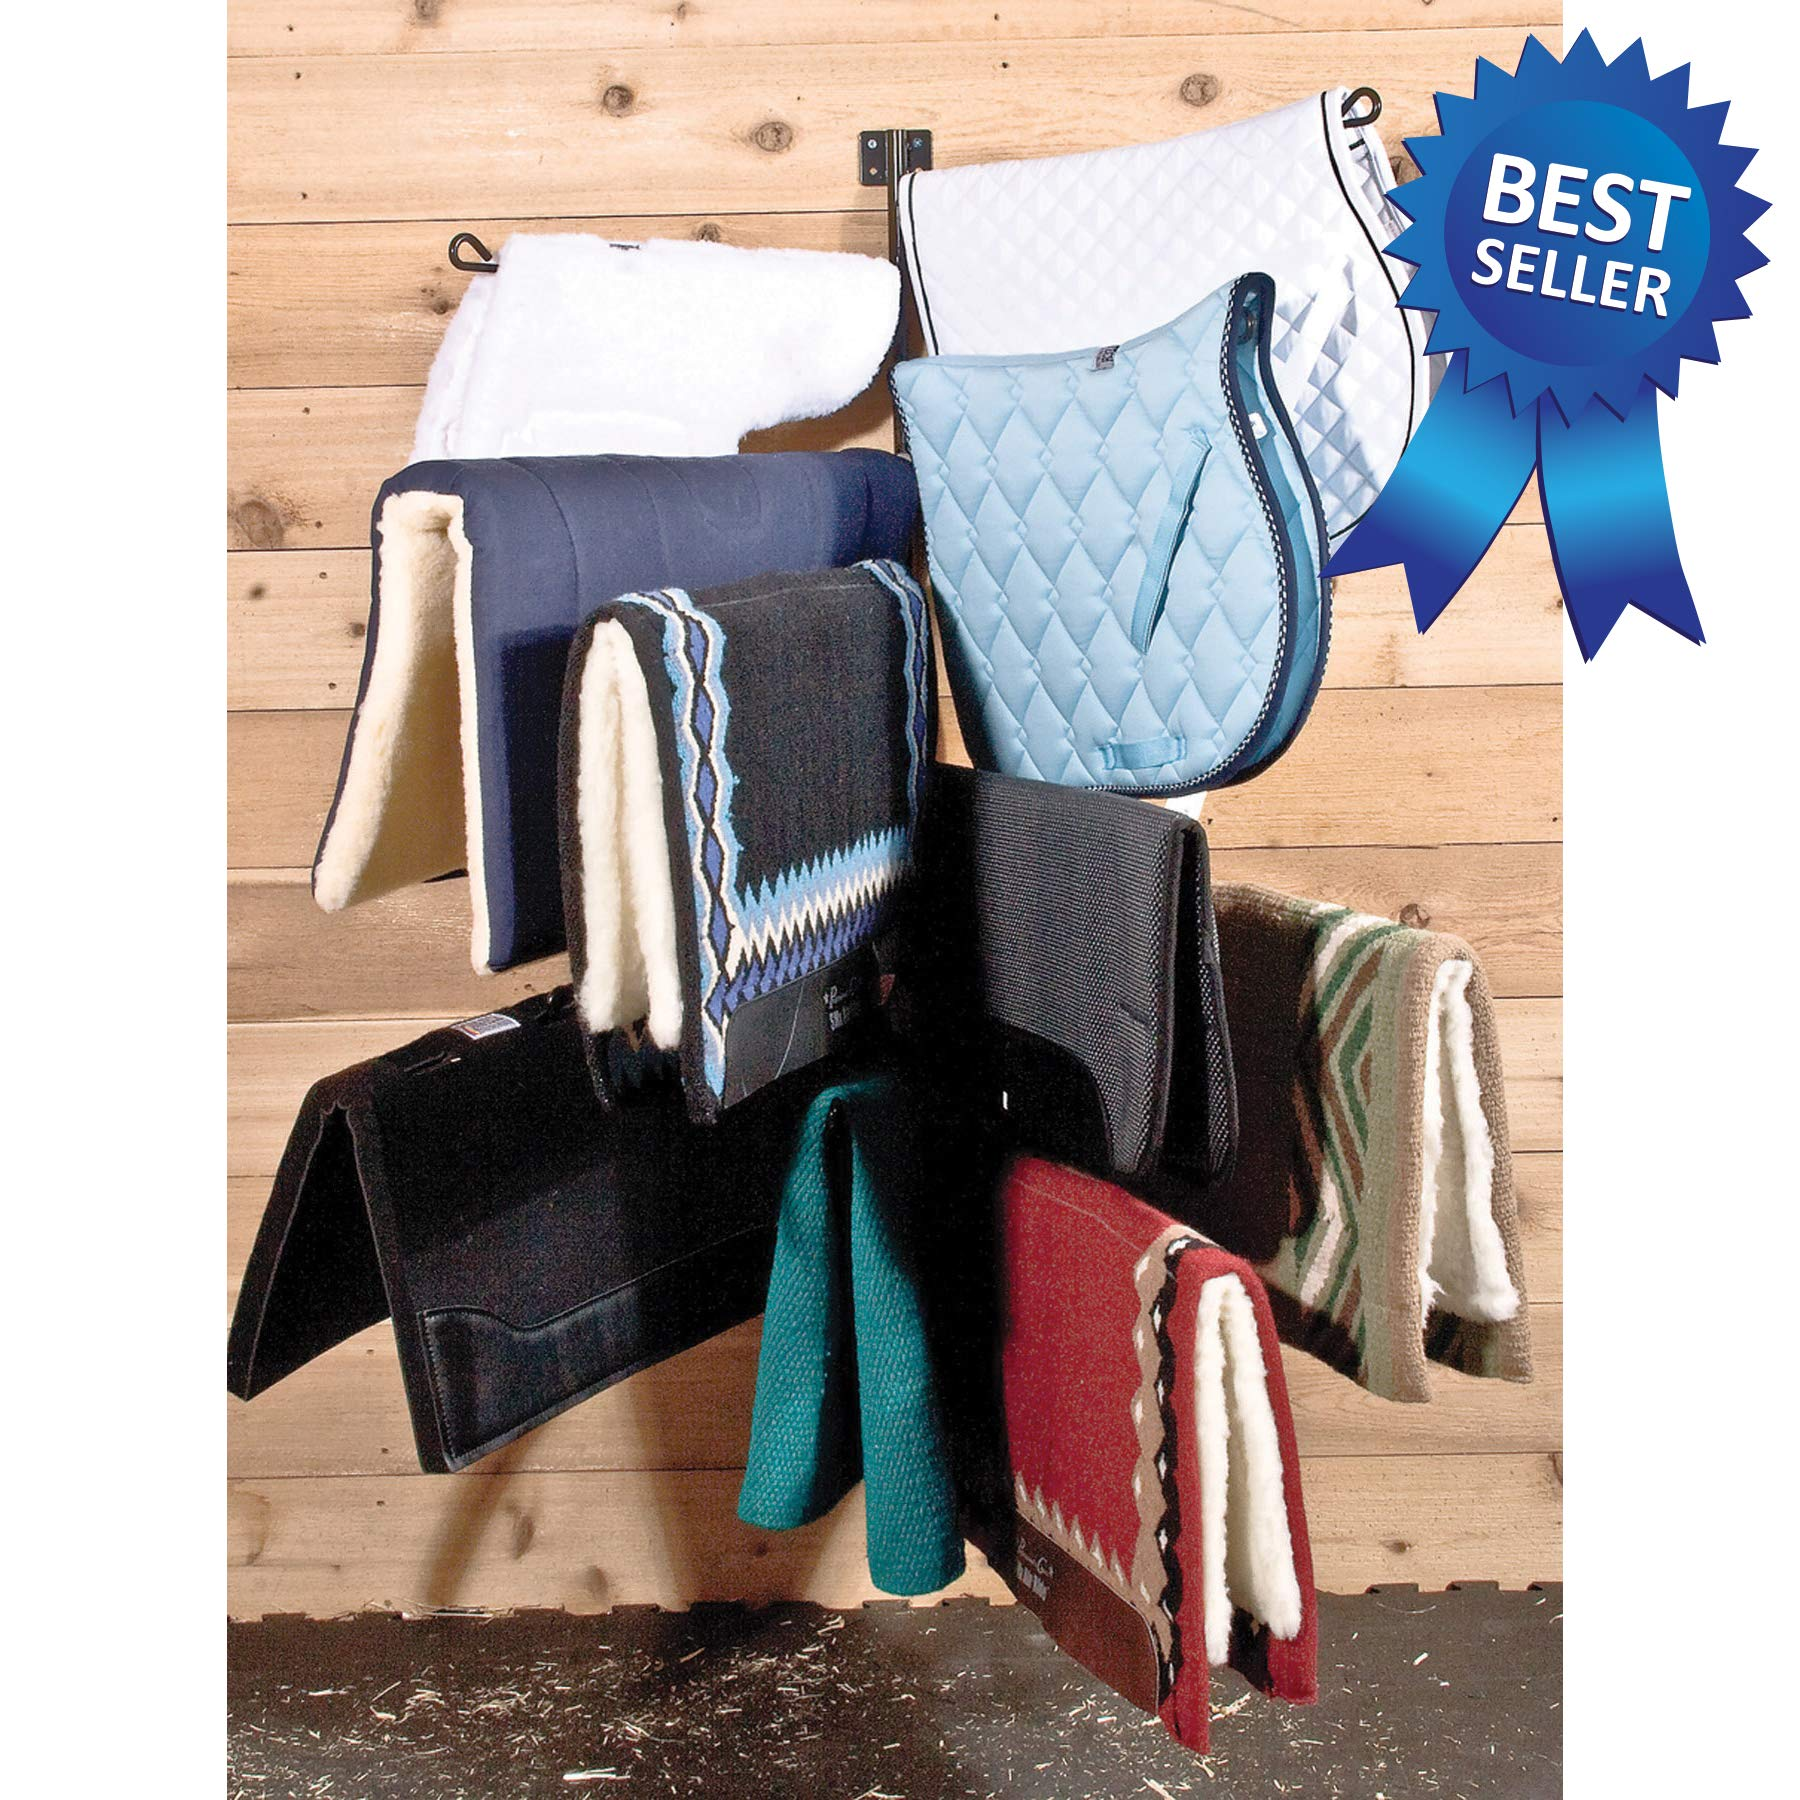 Easy-Up 10 Arm Vertical Pad Rack by Easy-Up (Image #1)